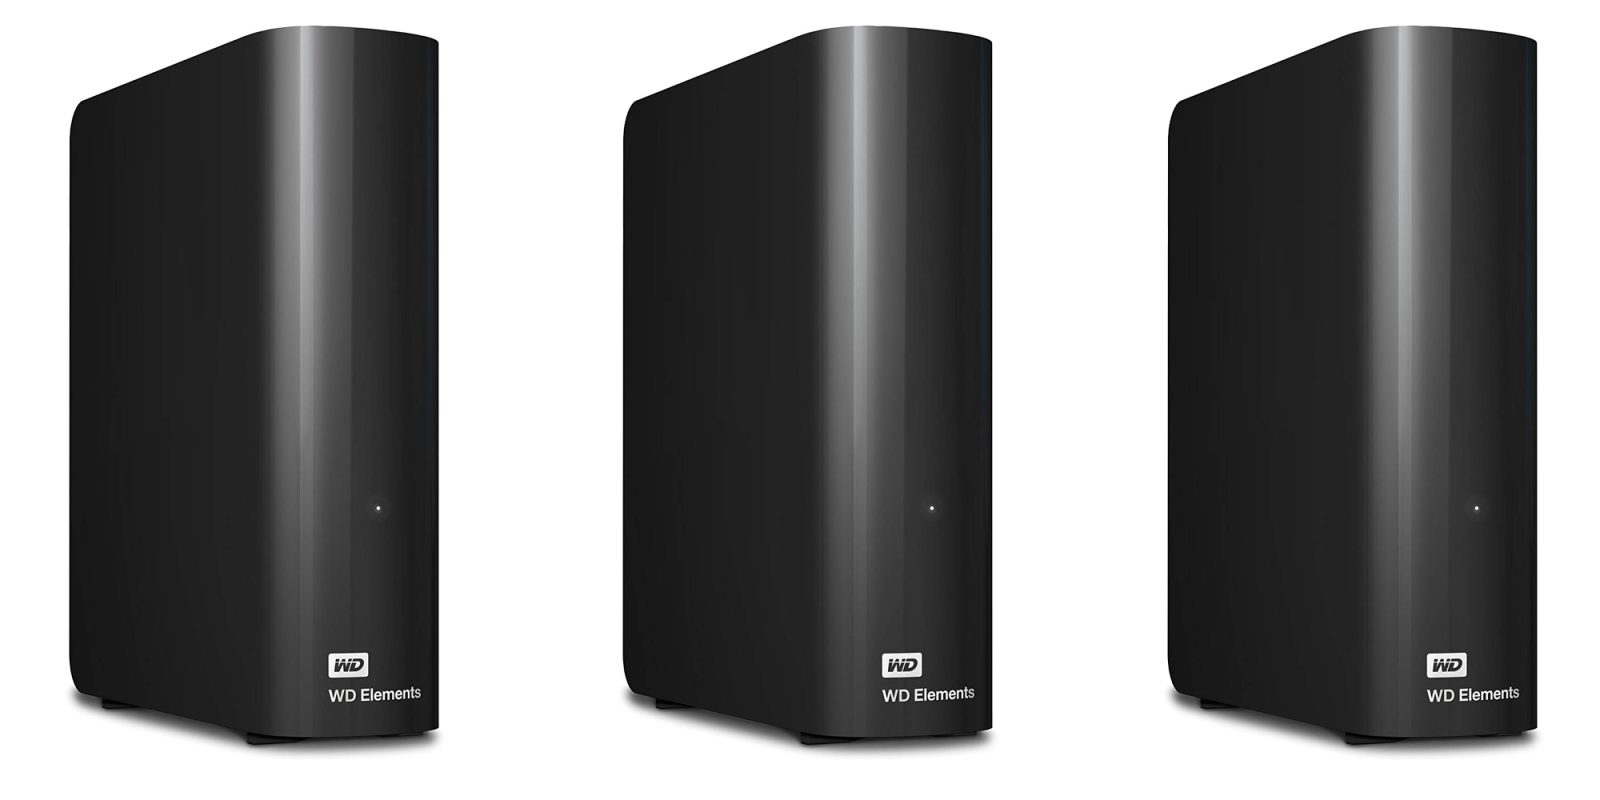 External WD hard drive with 4 terabytes - no VAT added